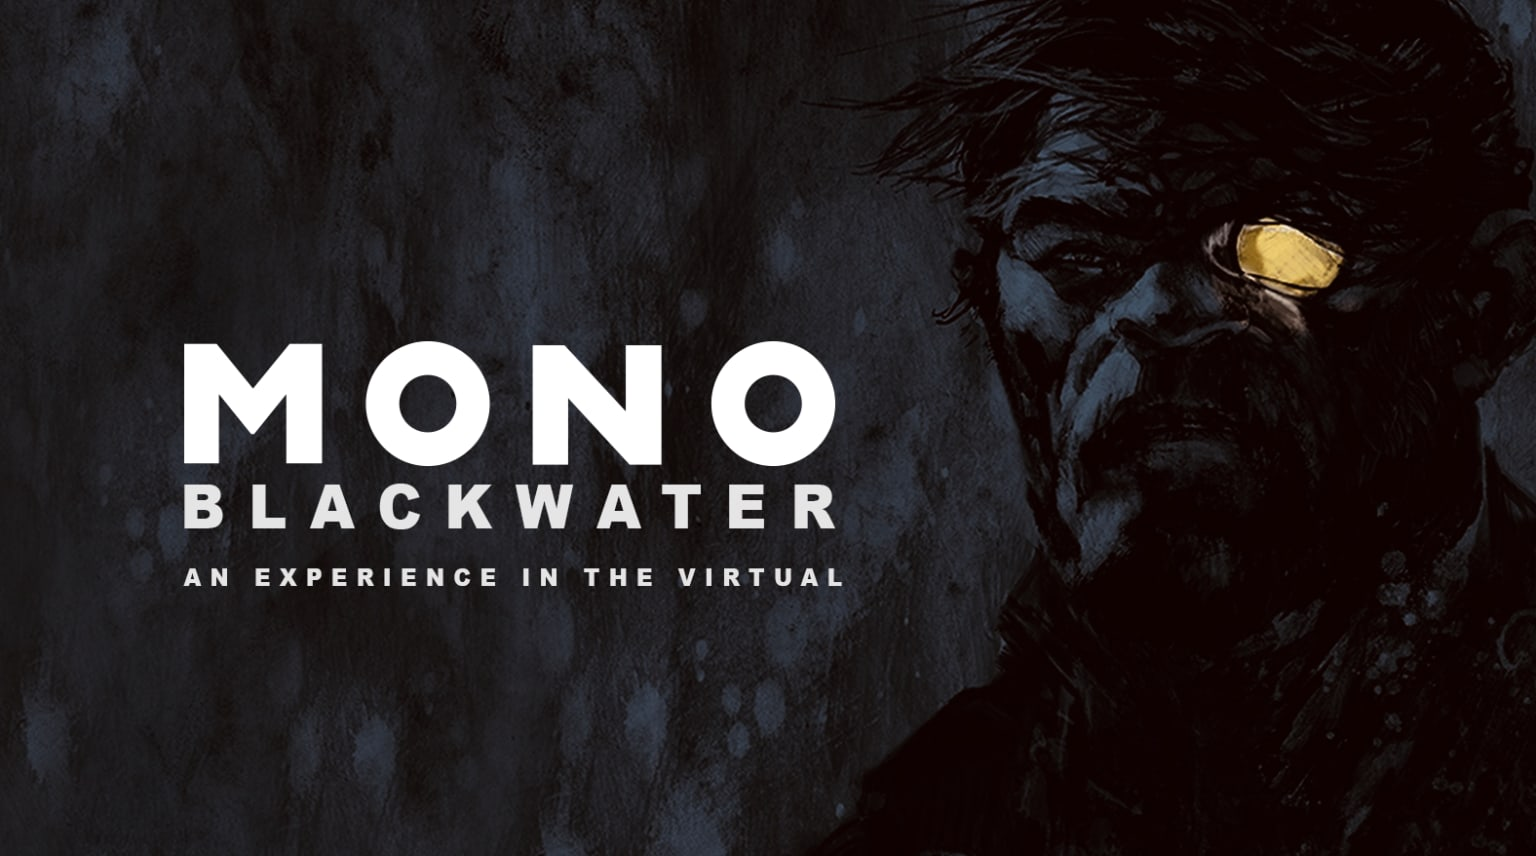 MONO BLACKWATER - AN EXPERIENCE IN THE VIRTUAL